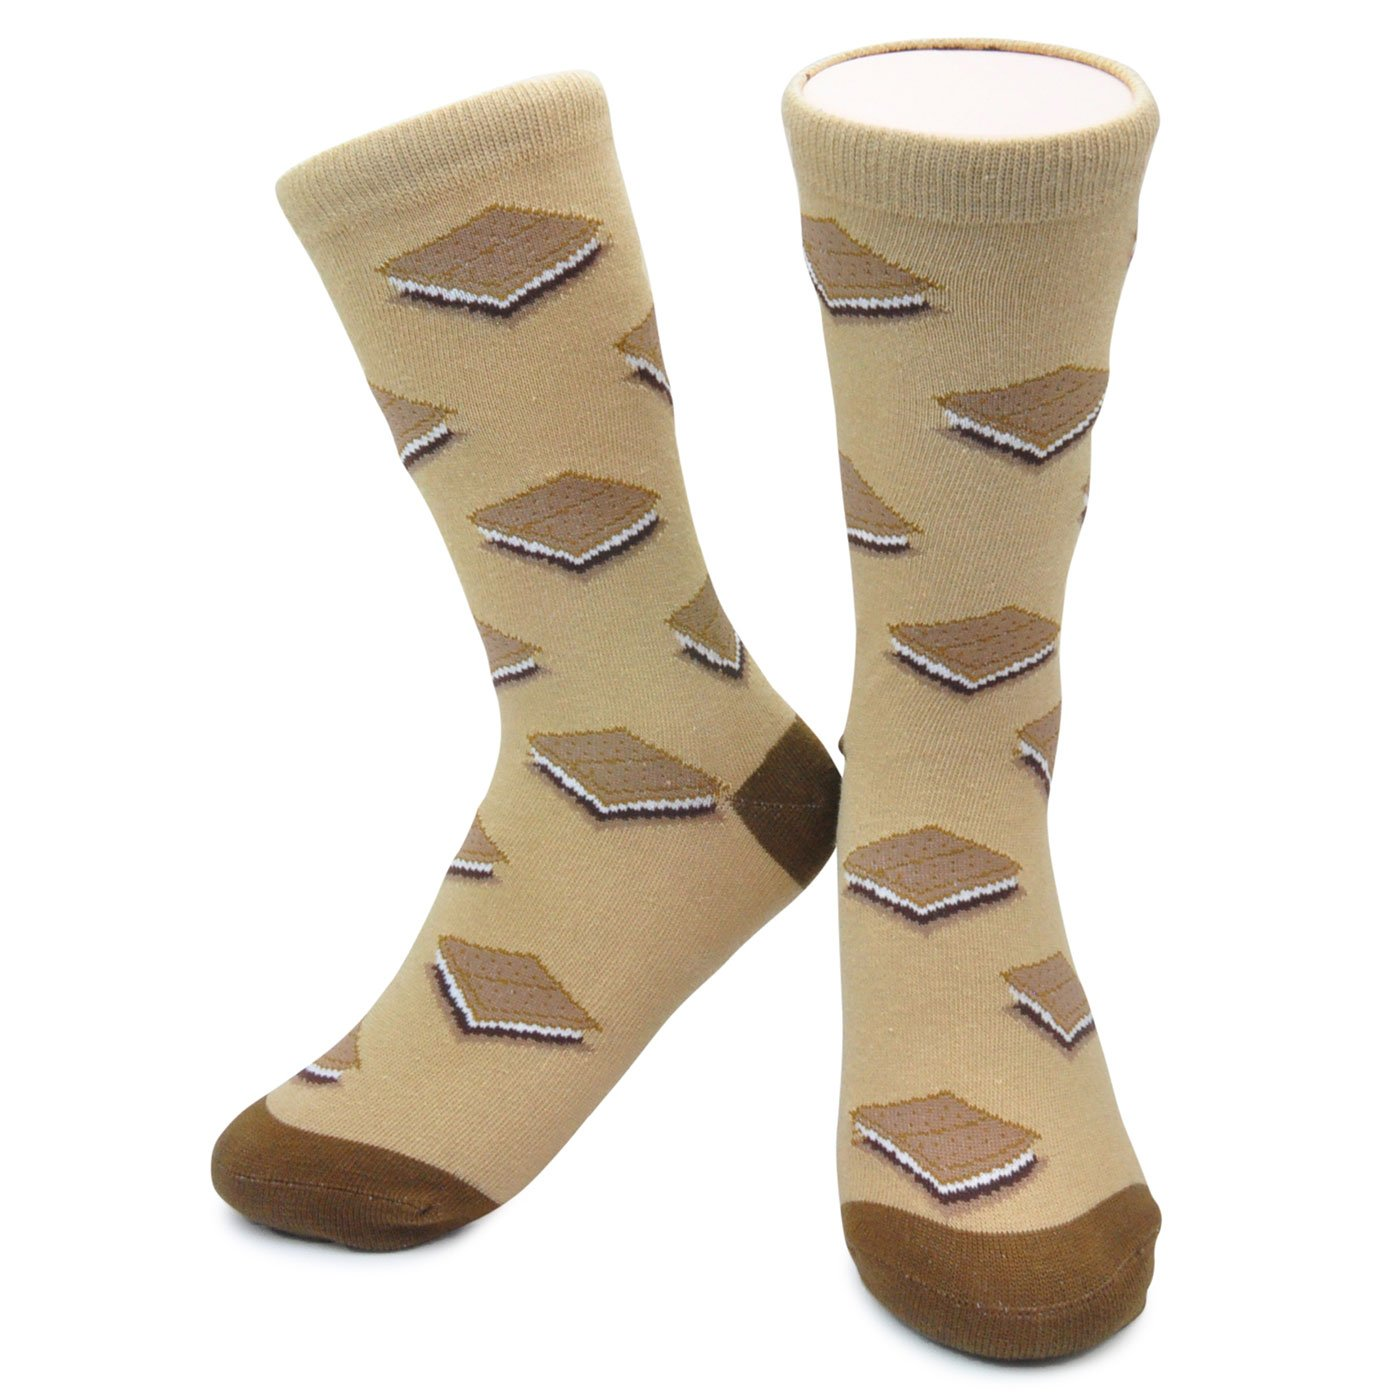 Funky Smores Socks by Neon Eaters - Kids, Womens & Mens sizes - Organic Cotton NeonEaters